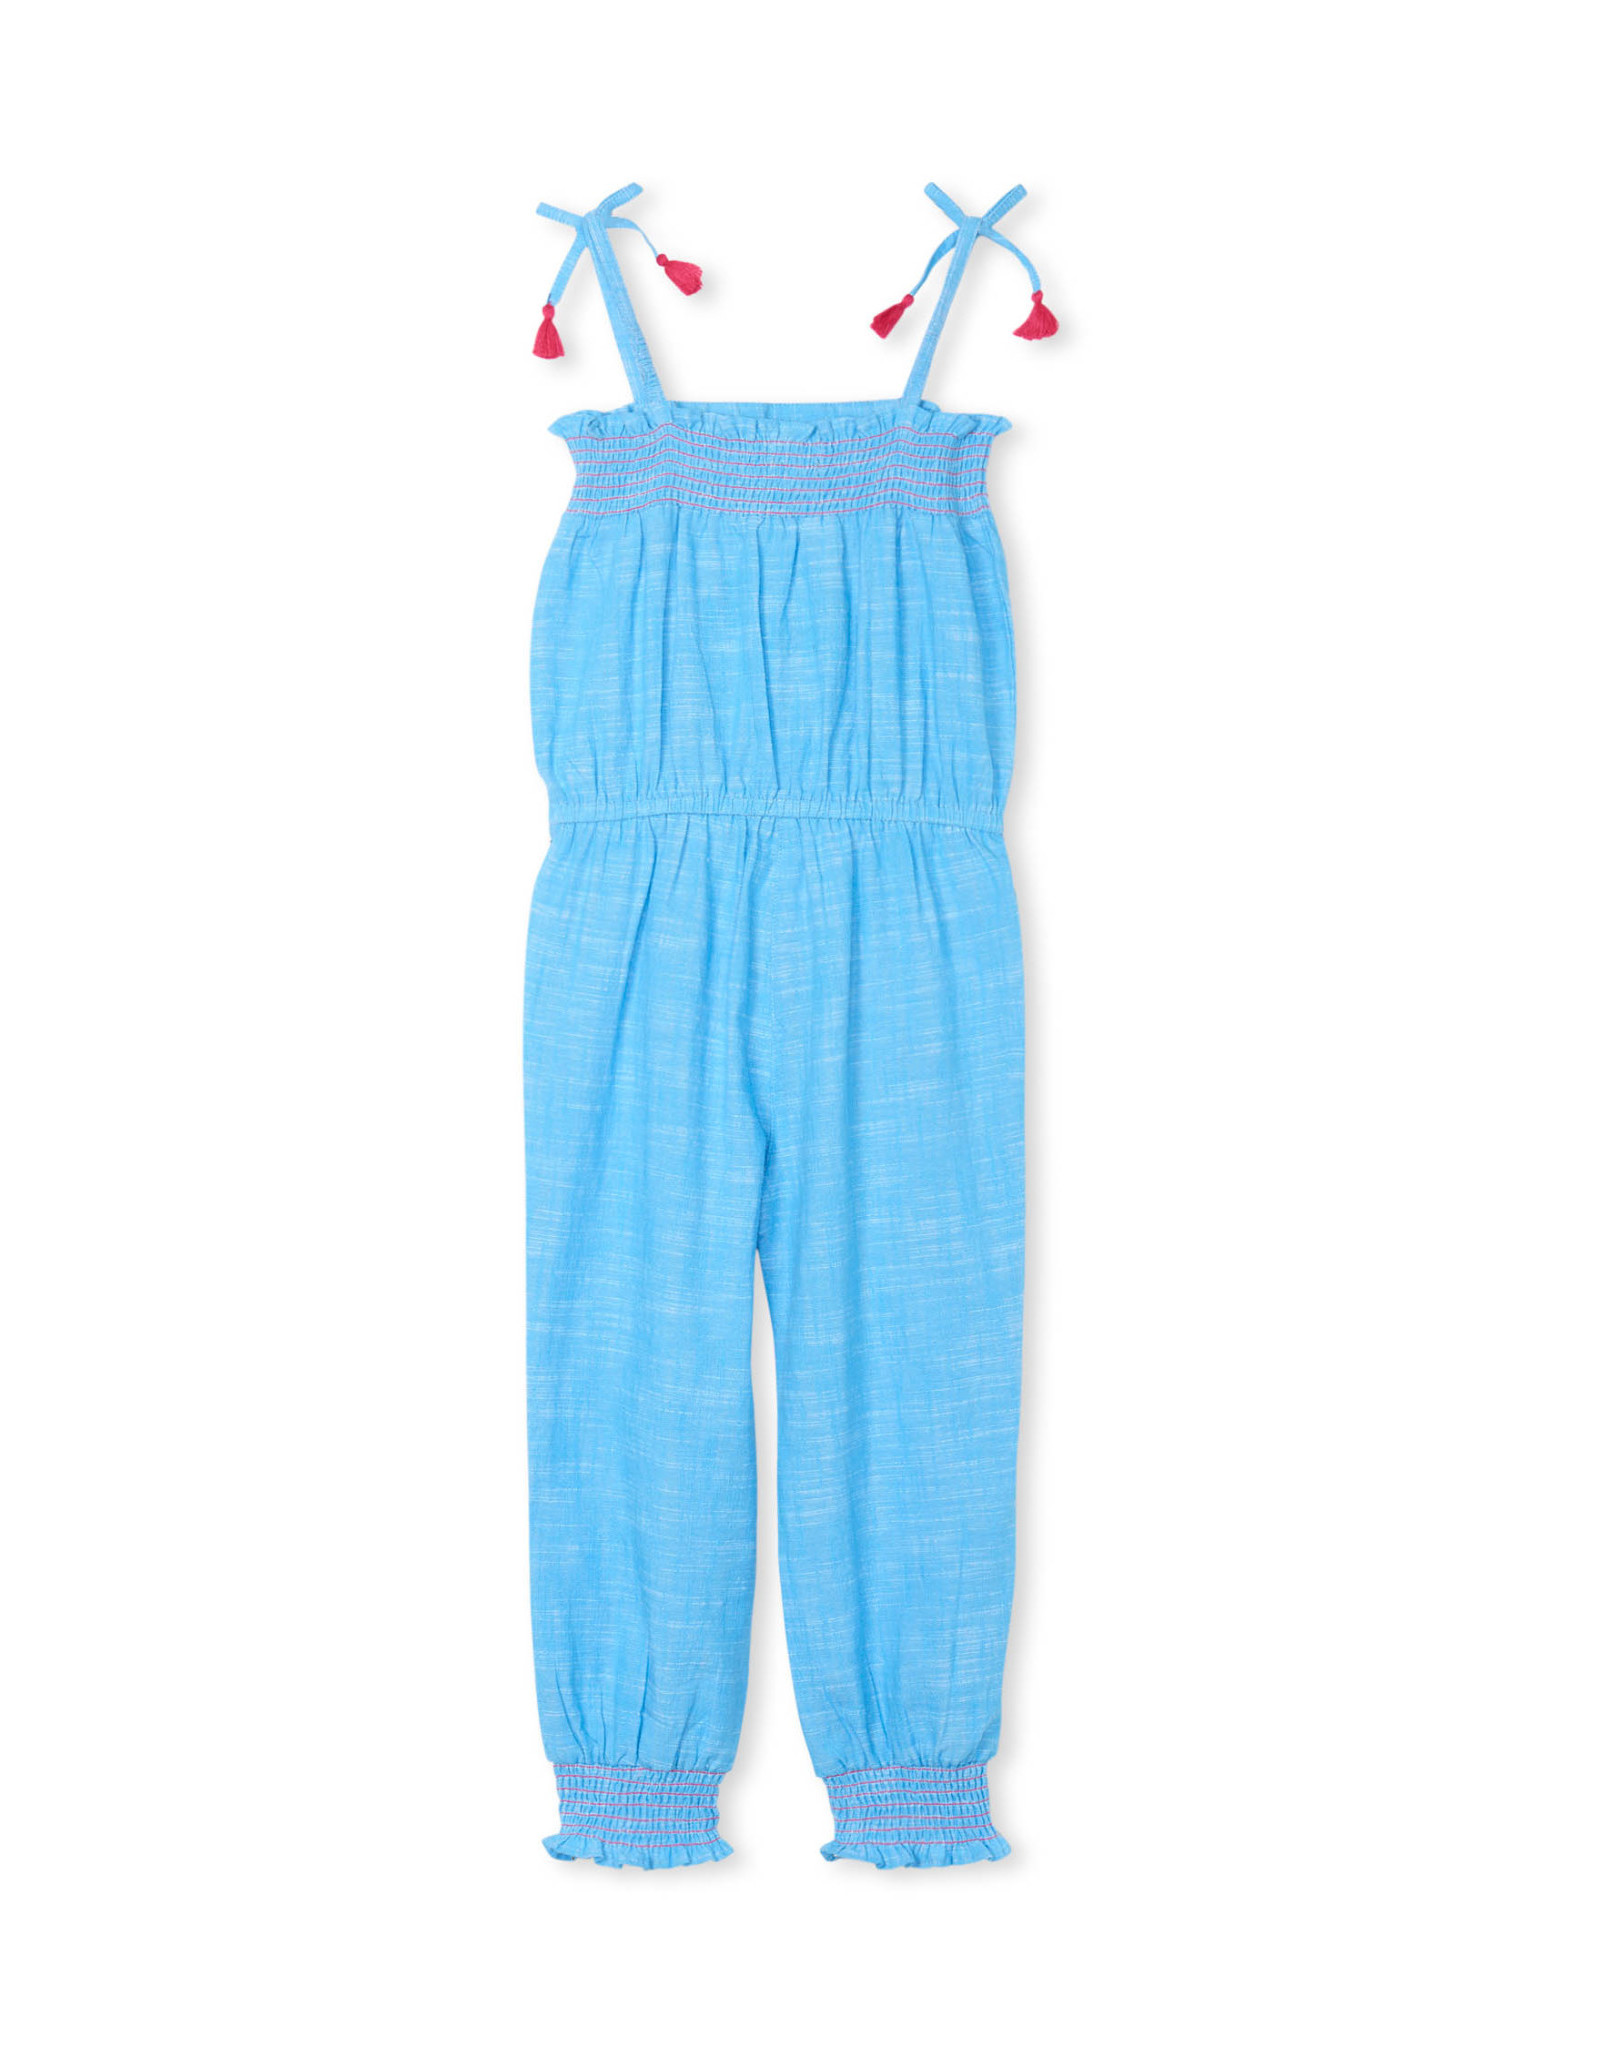 LITTLE BLUE HOUSE (HATLEY) SMOCKED JUMPSUIT